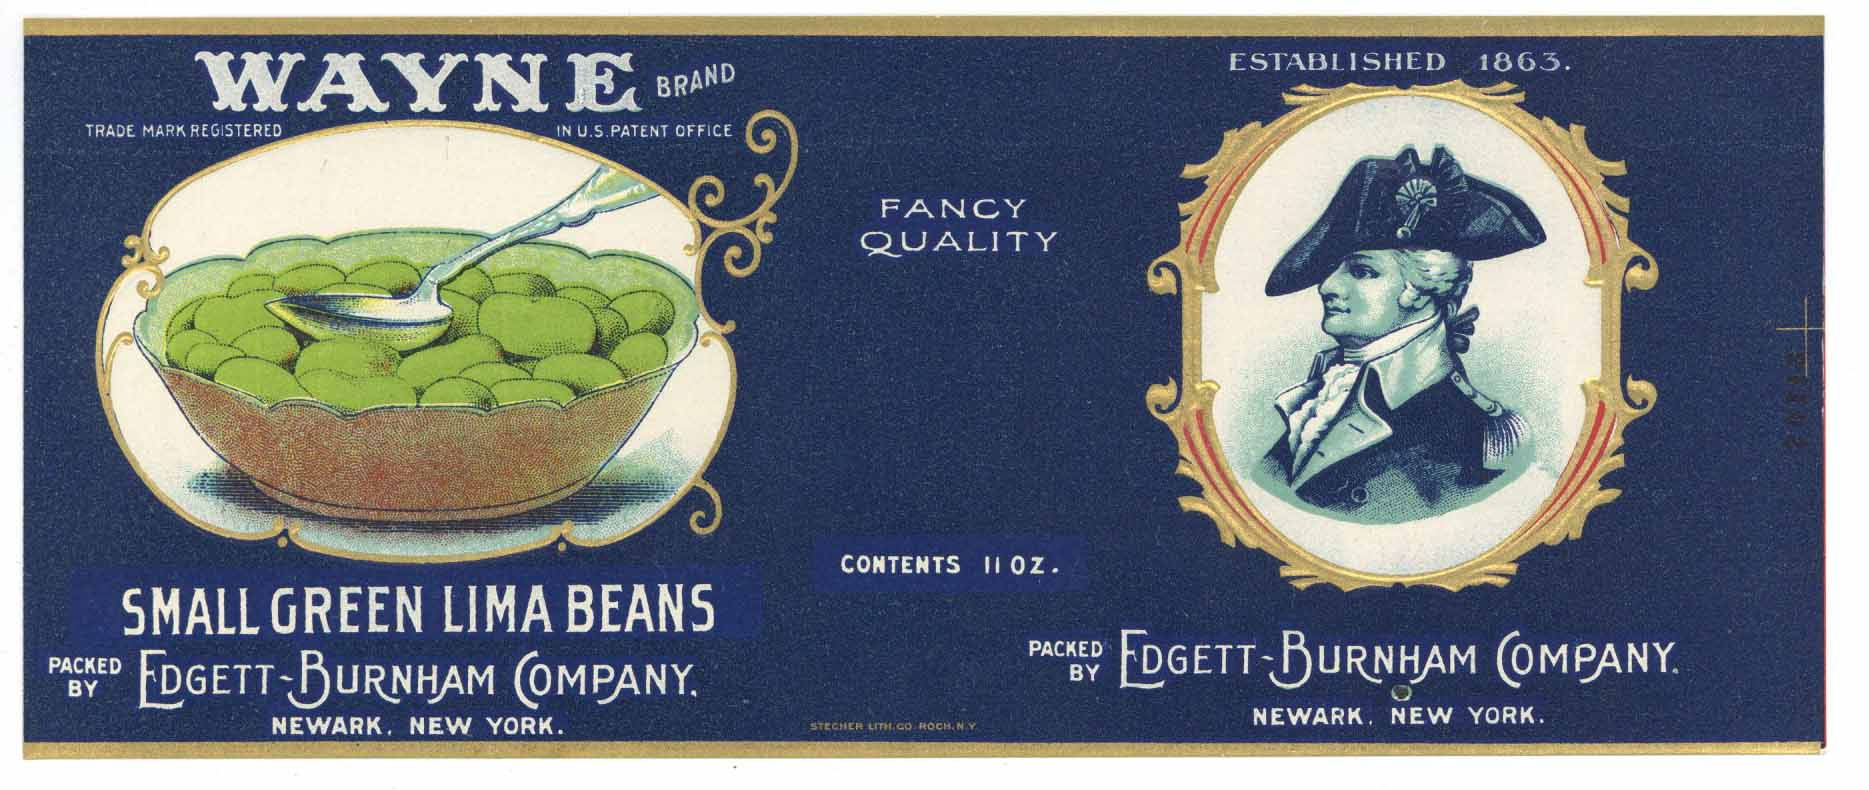 Wayne Brand Vintage Newark New York Small Green Lima Beans Can Label